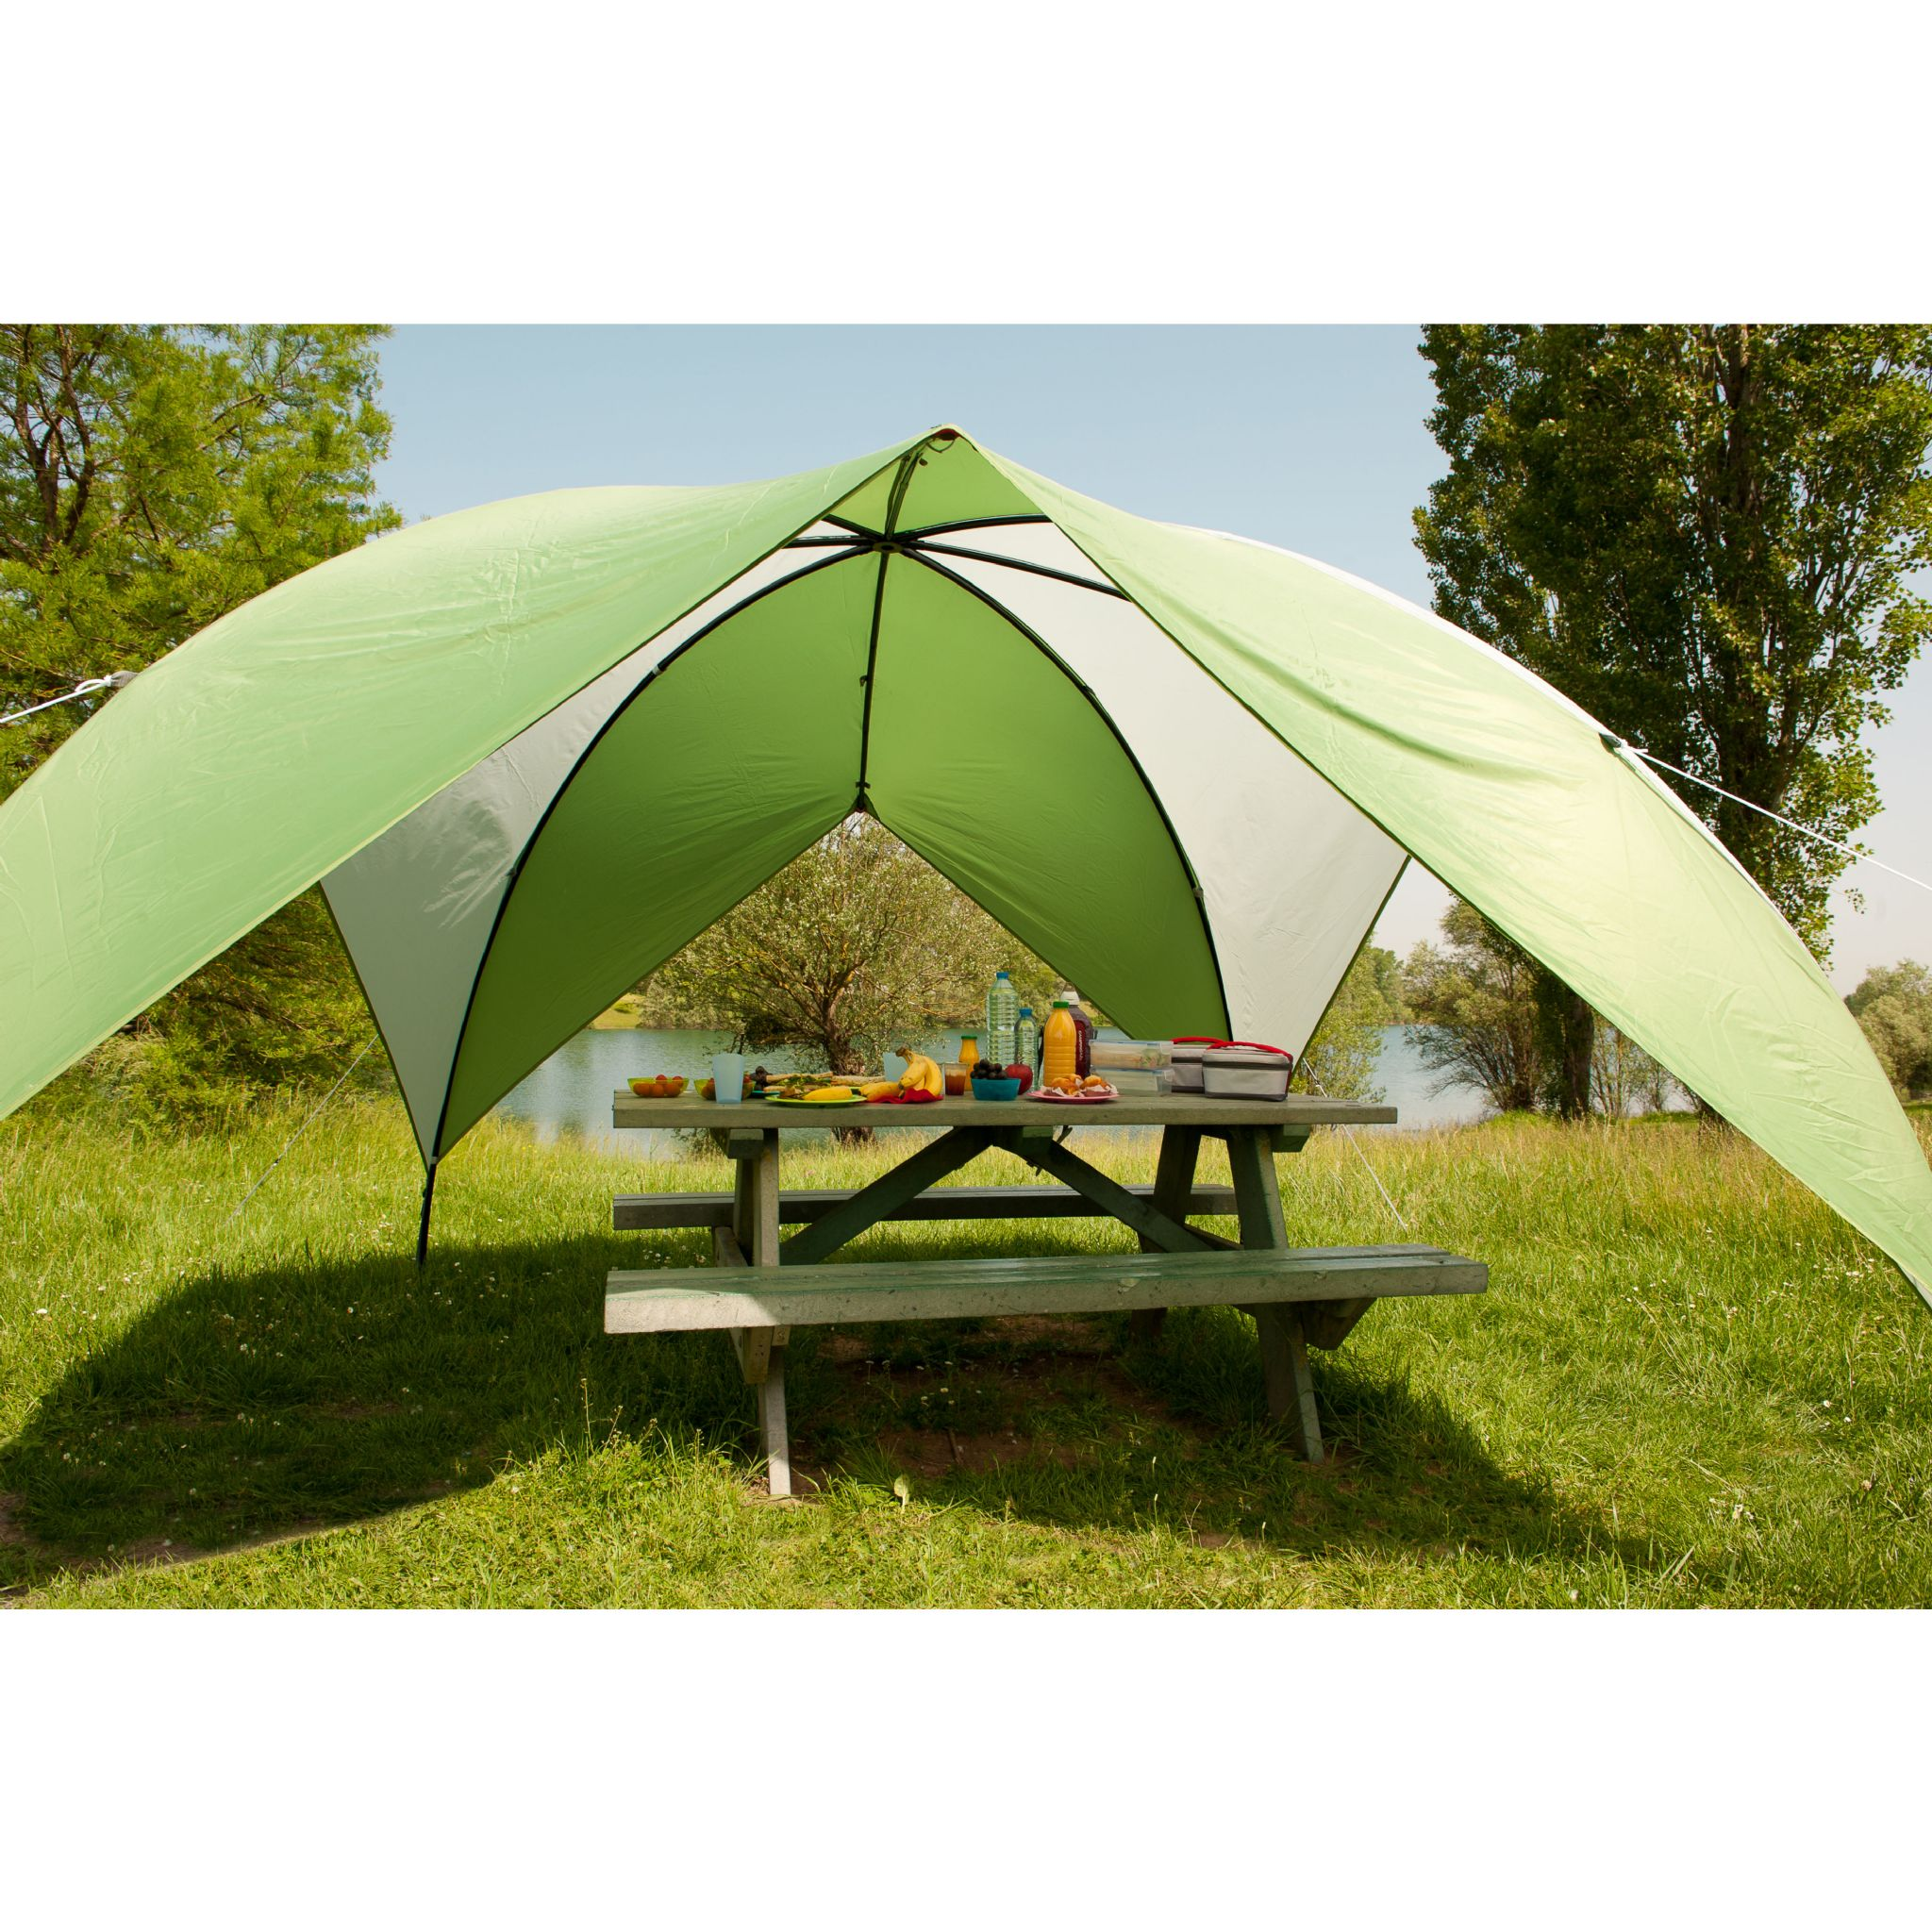 Coleman Event Shade Shelter Medium 3M - Grasshopper Leisure C&ing u0026 Beach Shelters  sc 1 st  Grasshopper Leisure & Event Shade Shelter Medium 3M - Grasshopper Leisure Camping ...